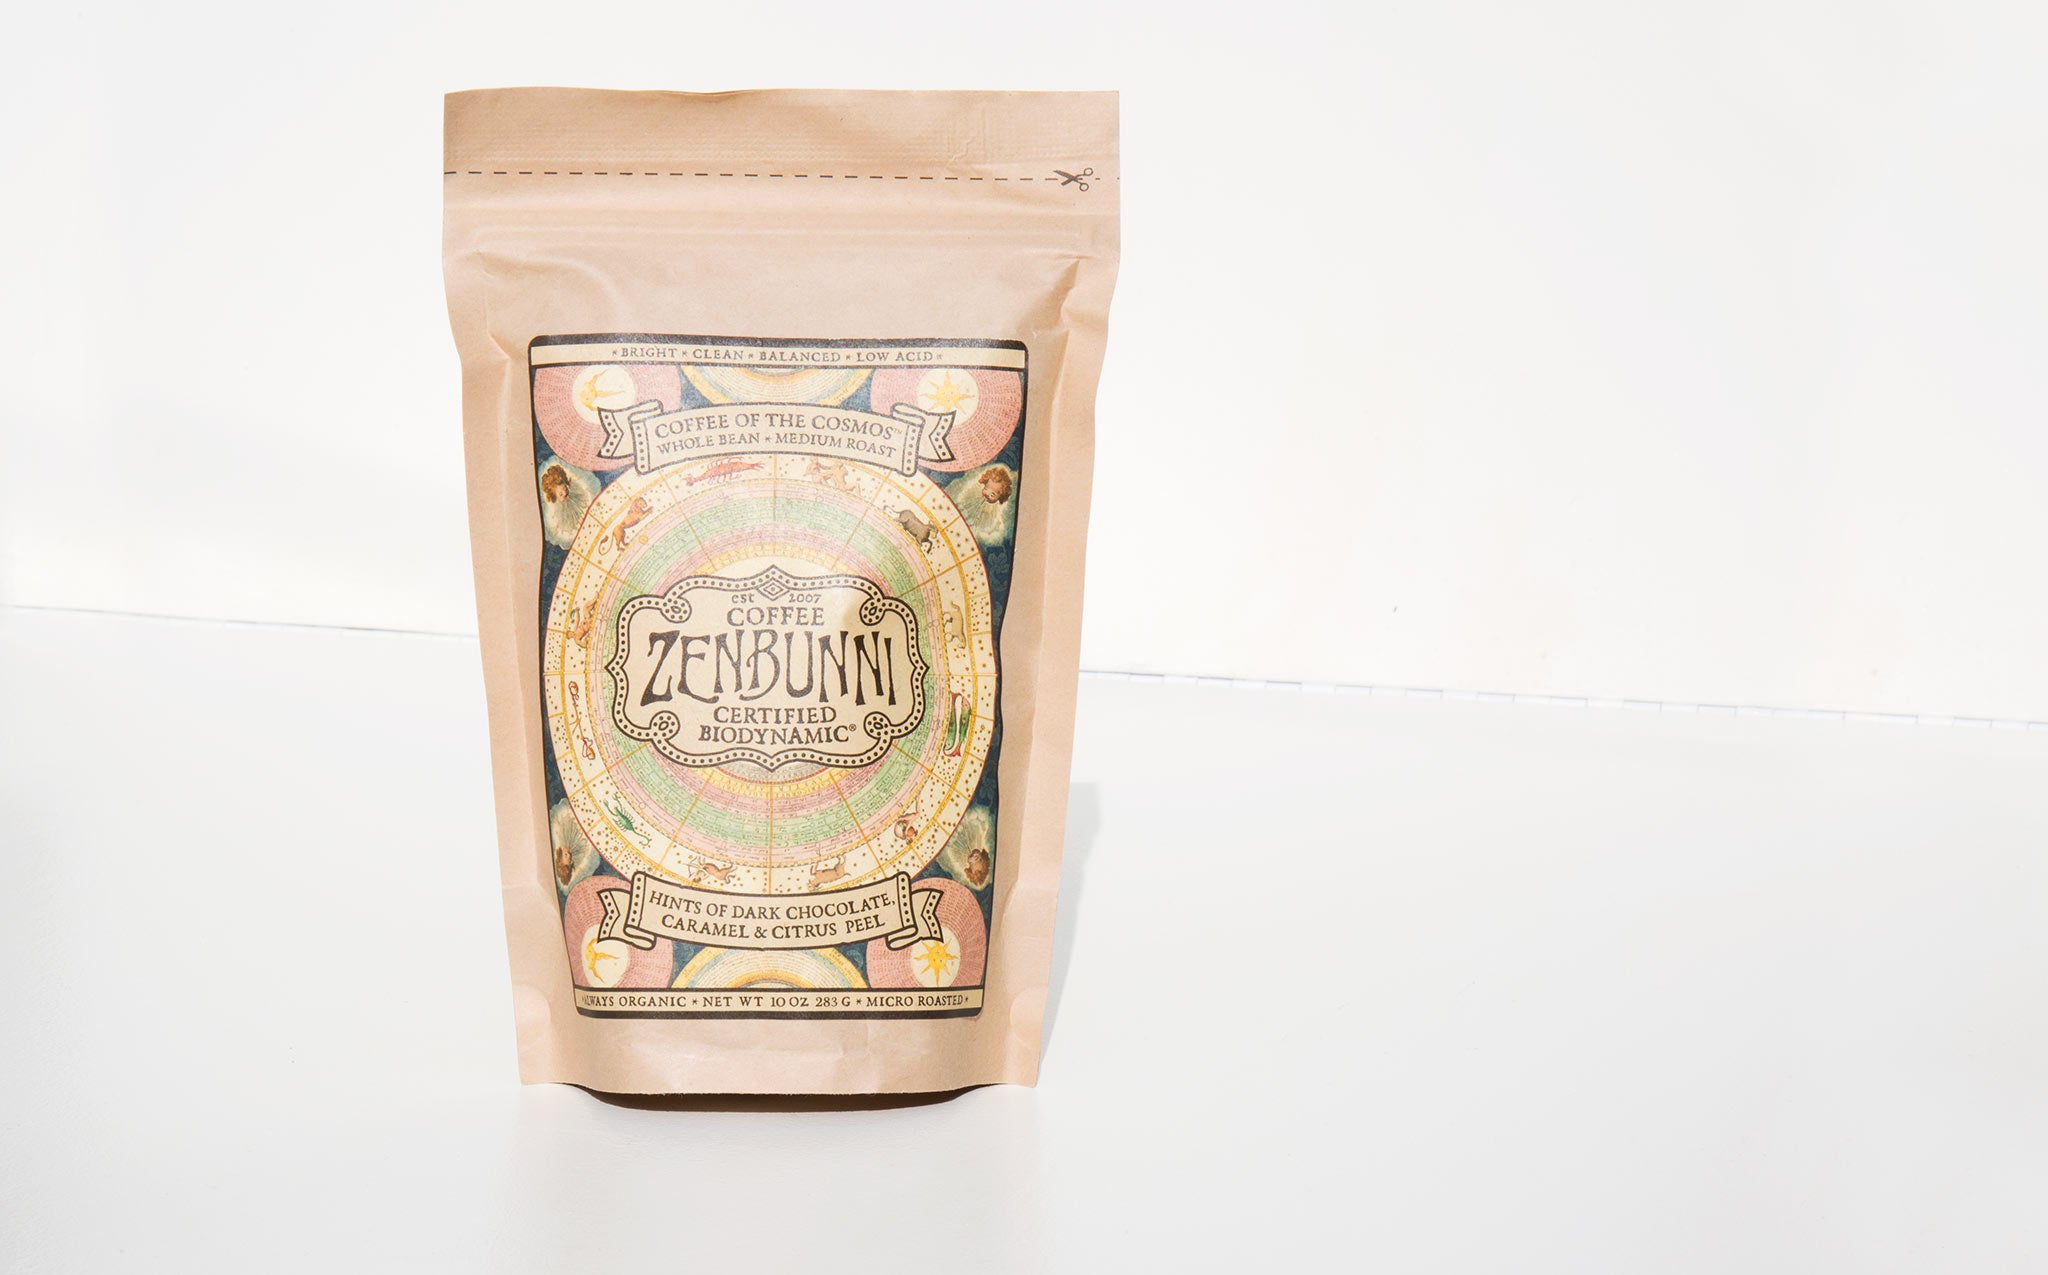 Zenbunni Coffee of the Cosmos